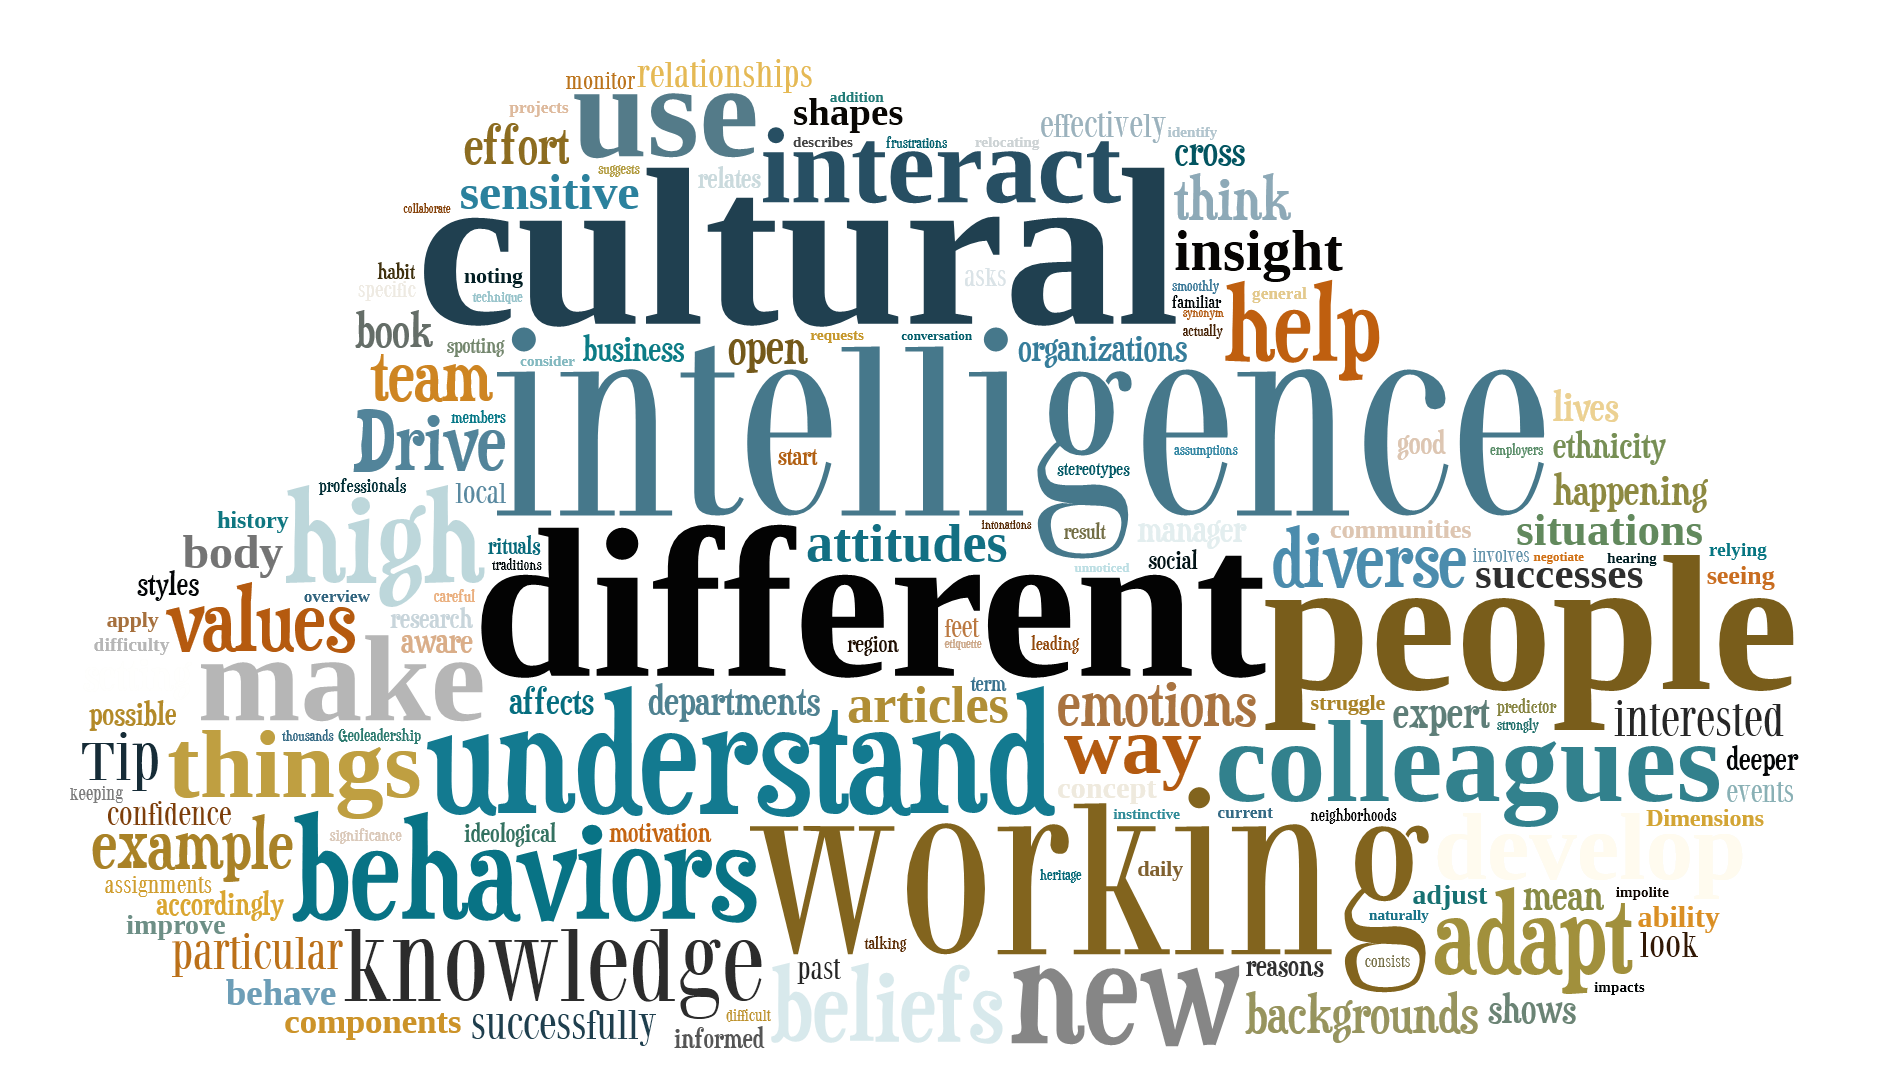 Cultural & Emotional Intelligence